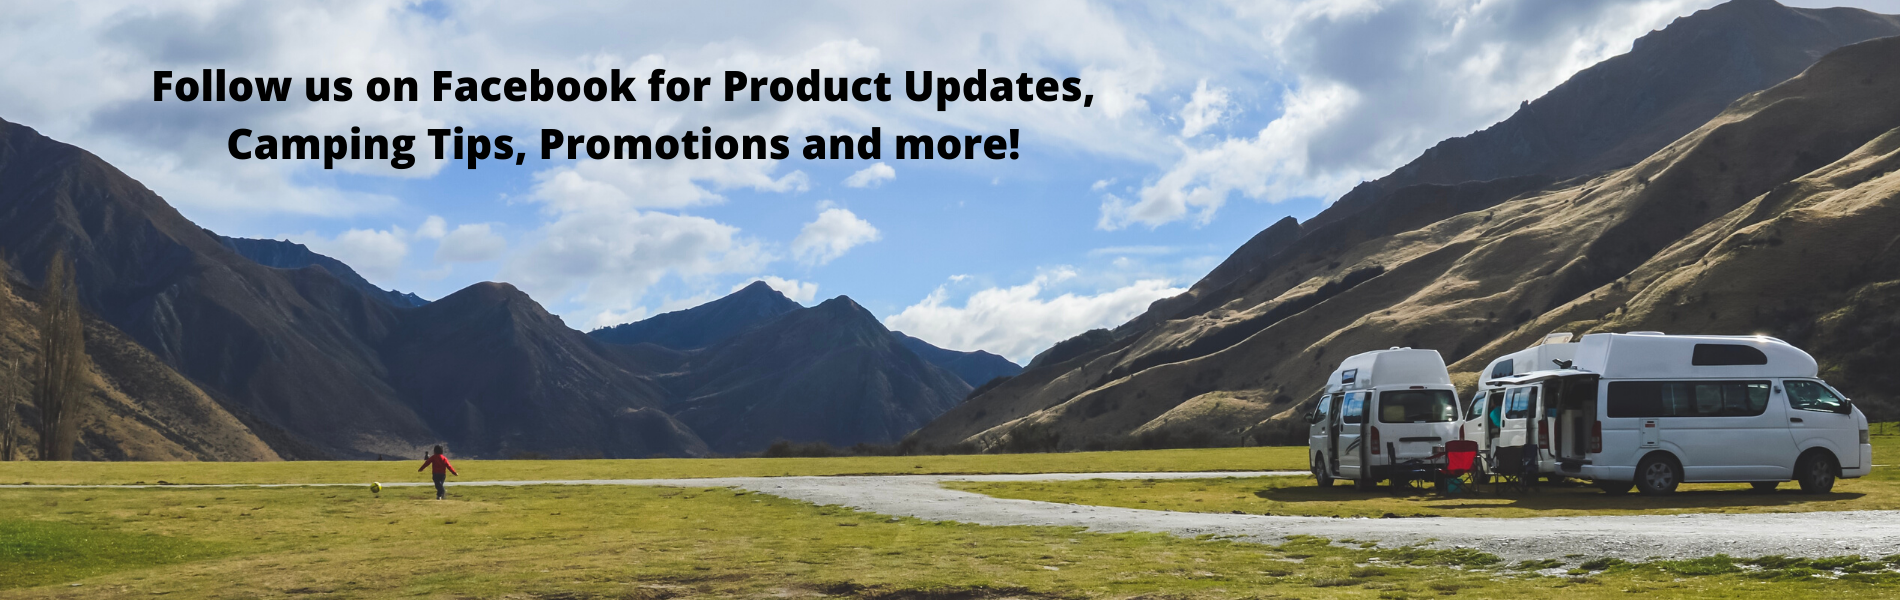 Follow us on Facebook for Product Updates, Camping Tips, Promotions and more!